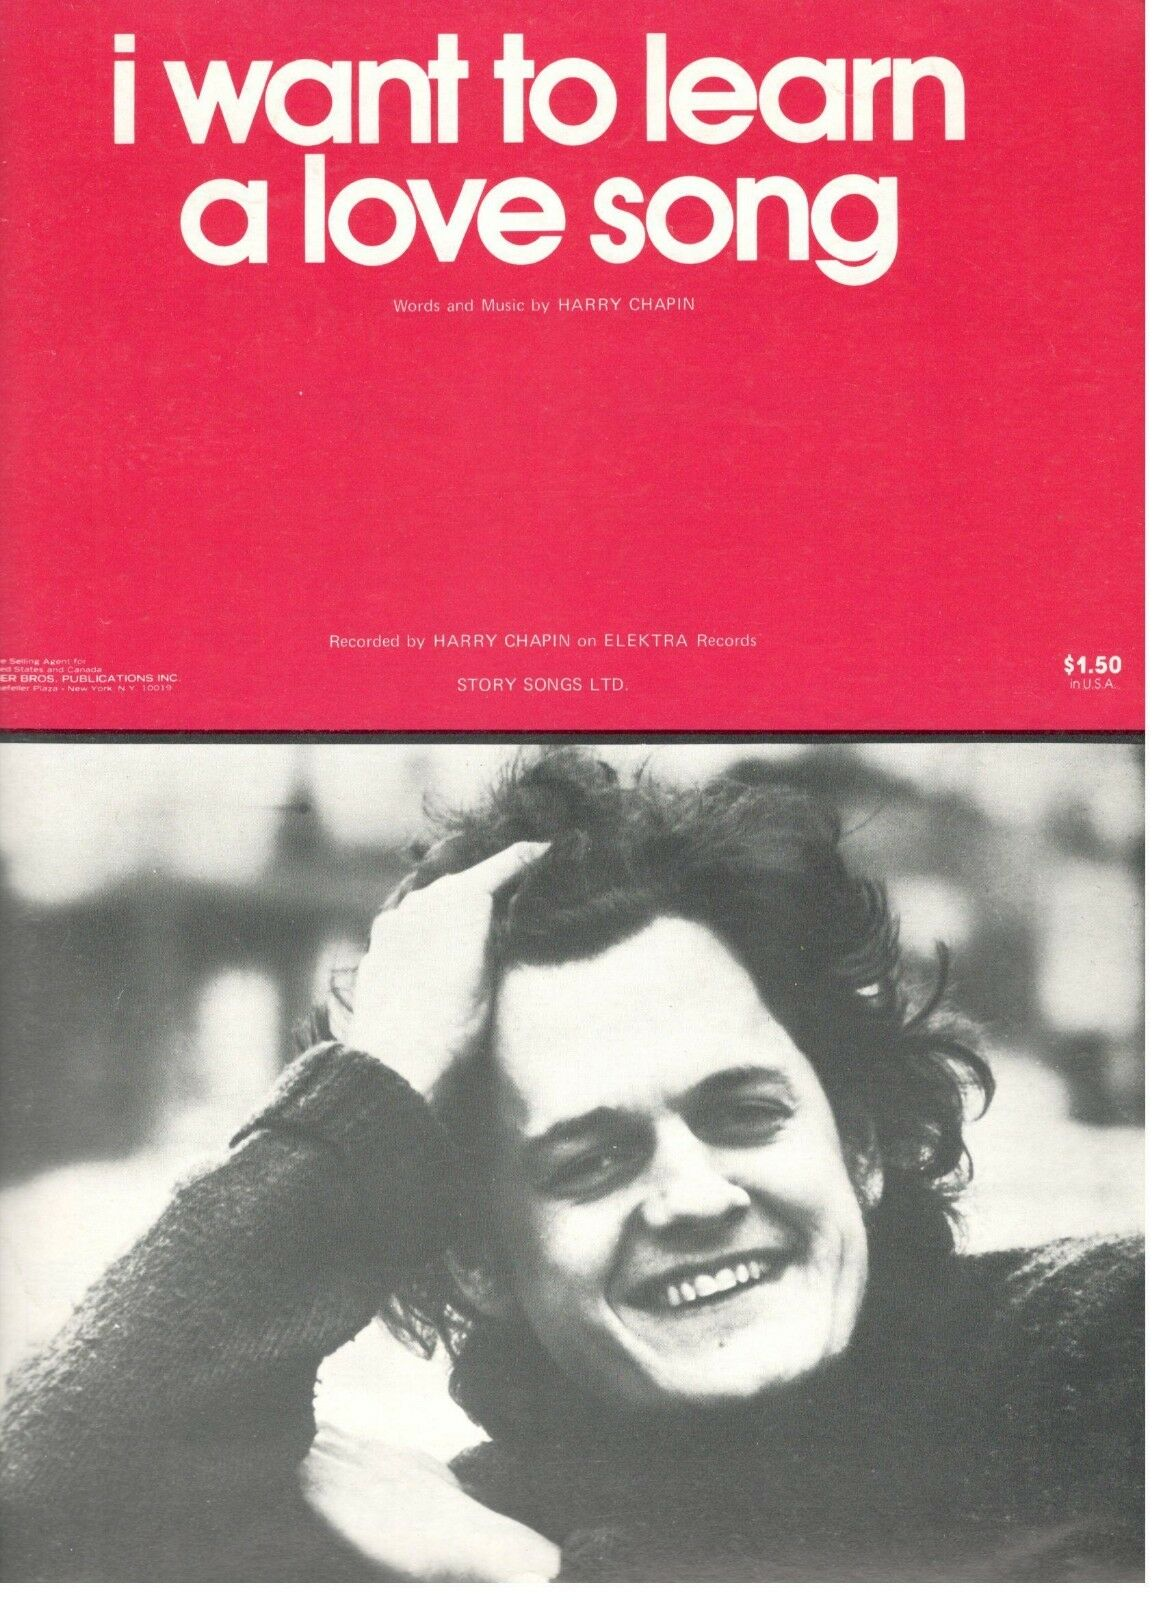 HARRY CHAPIN-I WANT TO LEARN A LOVE LOVE LOVE SONG-SHEET MUSIC-PIANO/VOCAL/CHORDS-1974-NEW cc1e09